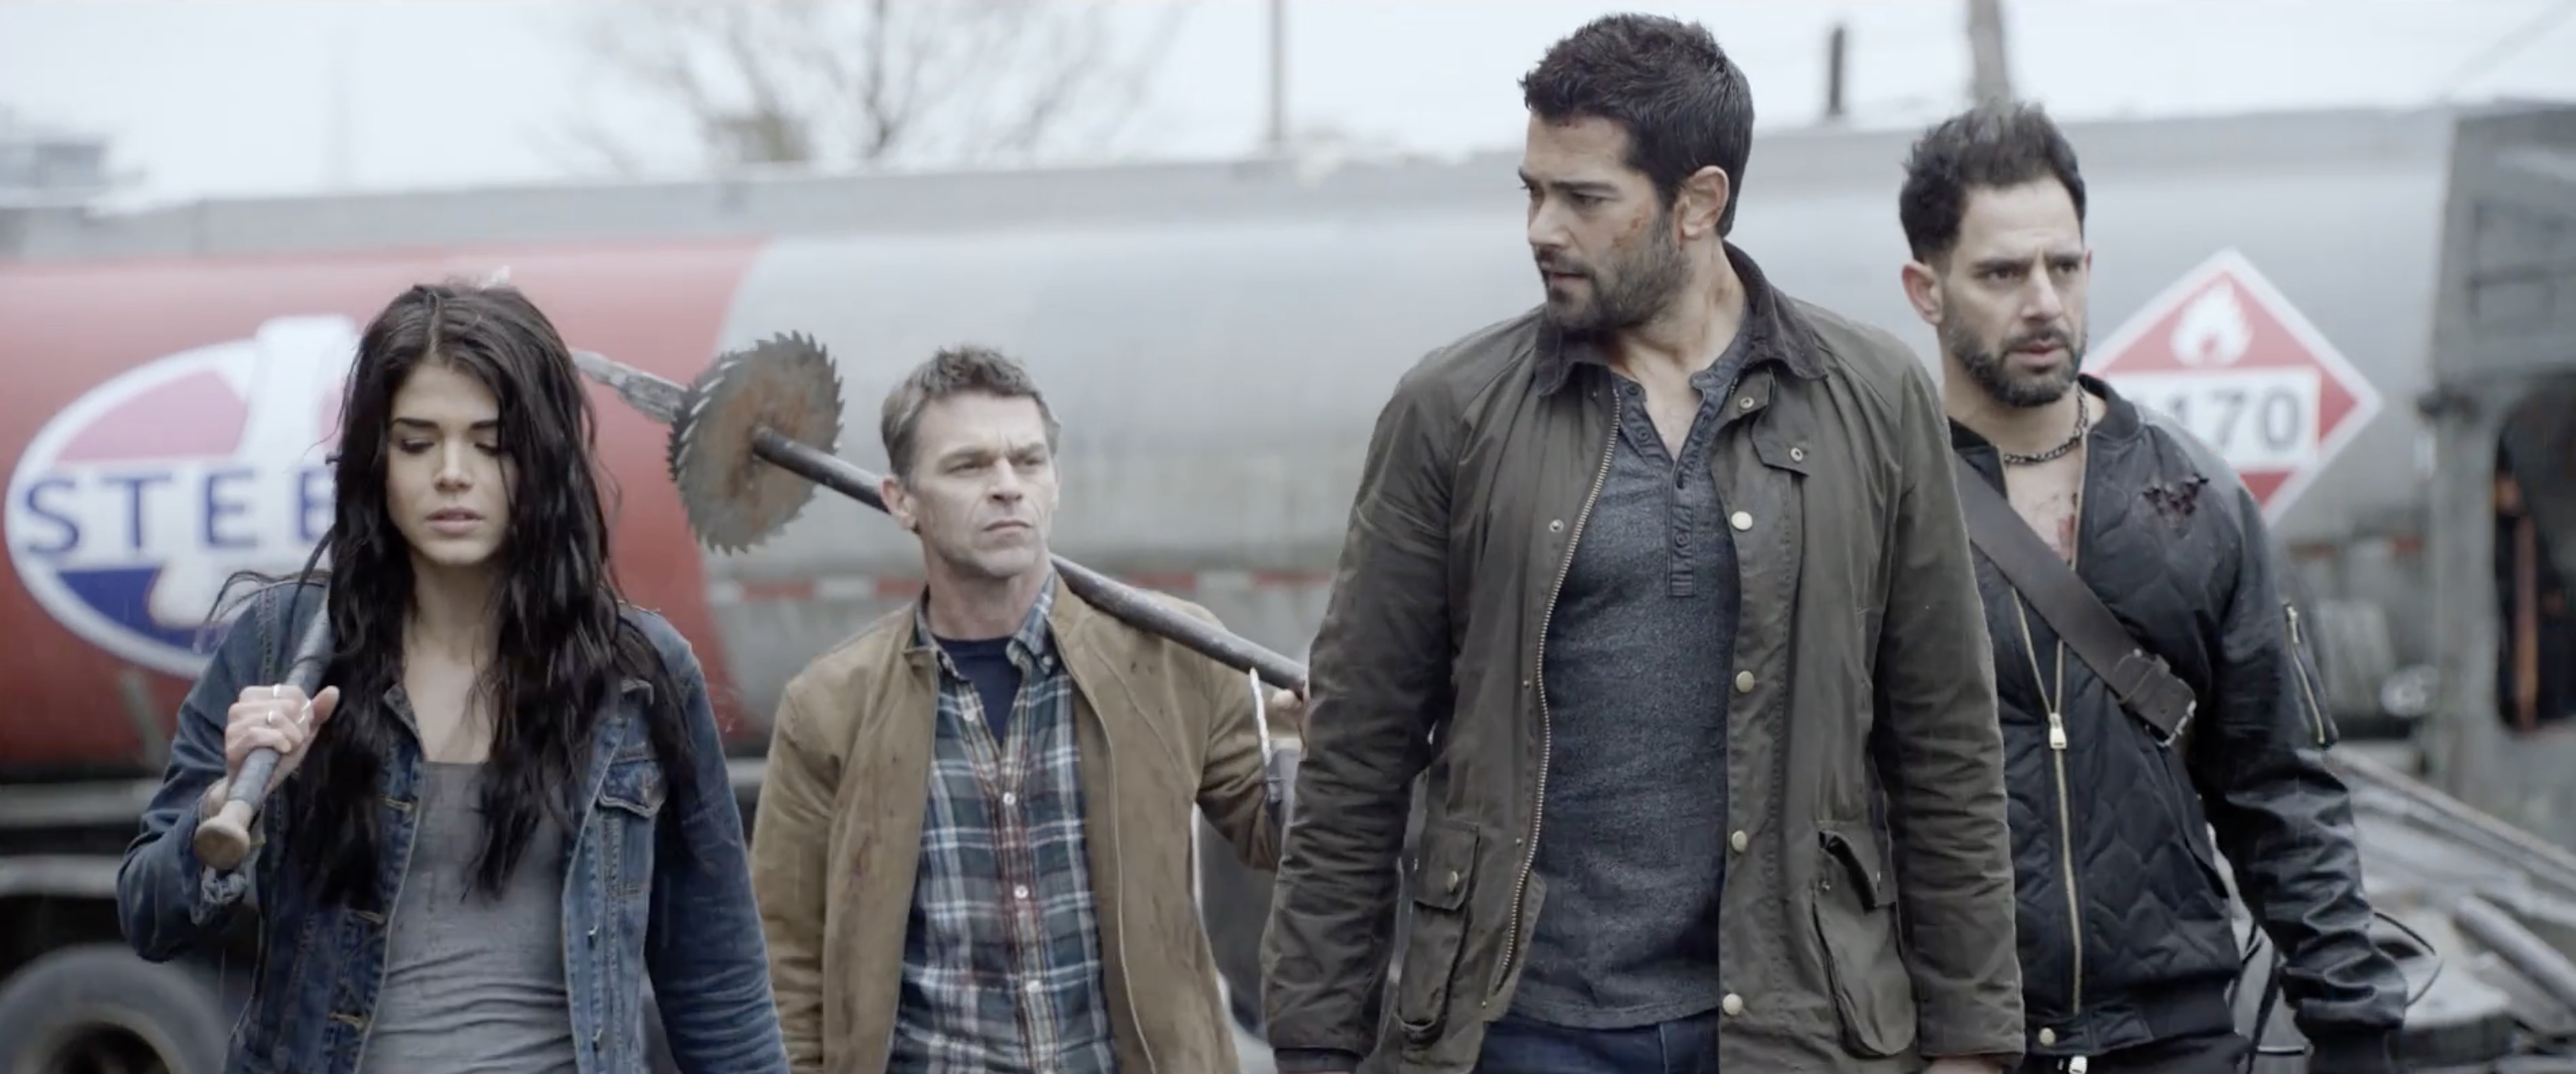 Dead Rising Endgame Survivors Strut With Their Weapon Of Choice